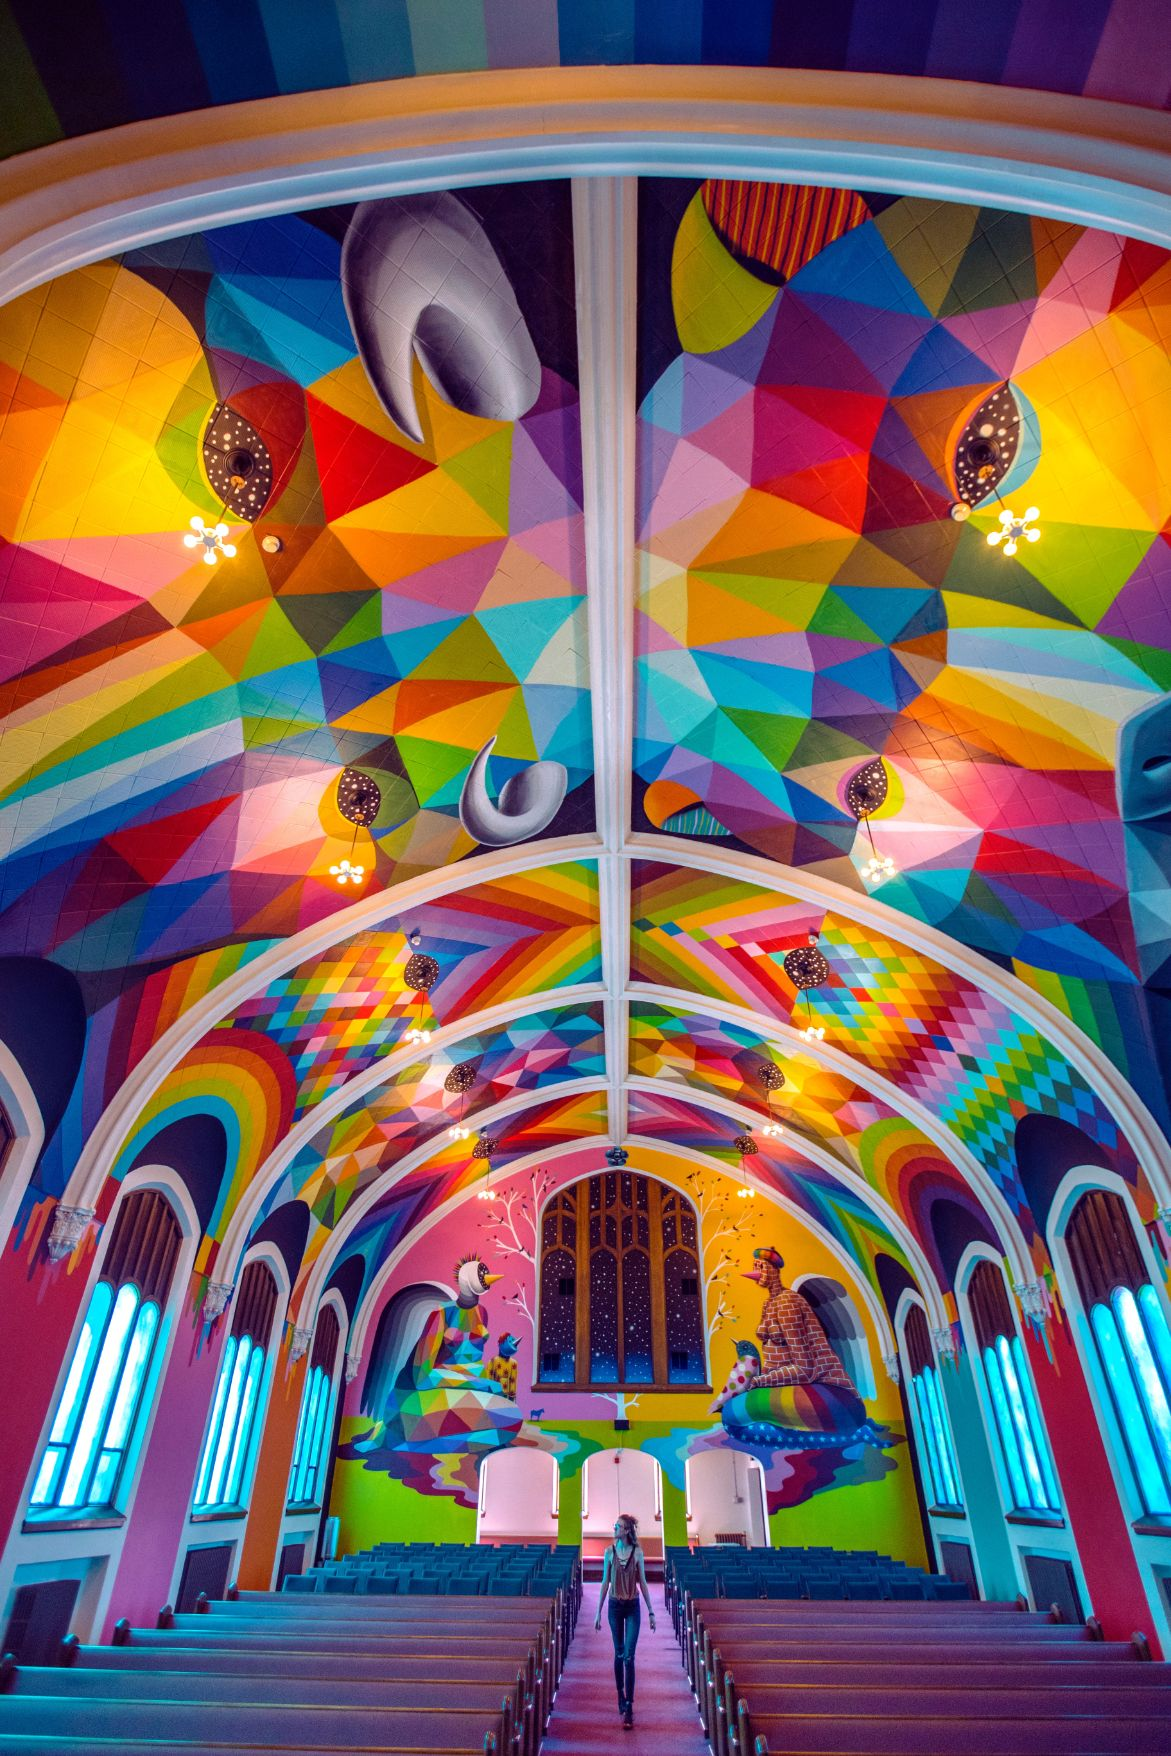 chapel with a colorful mural on the cieling